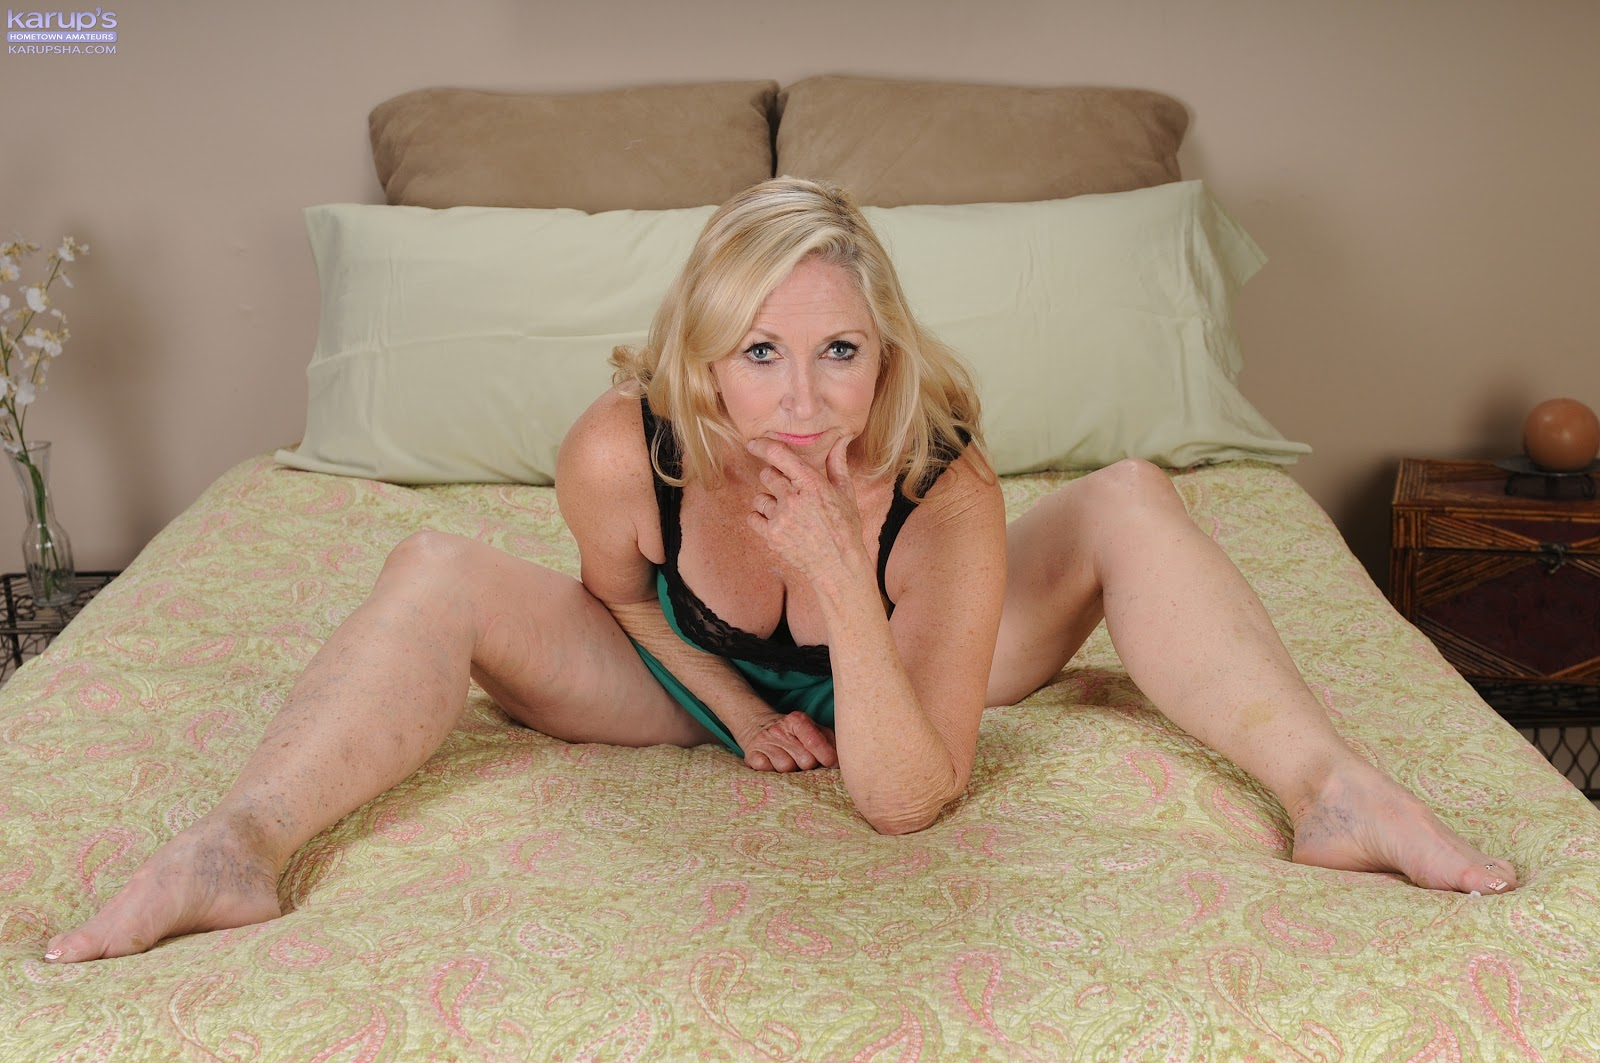 one Early female domination just easy way say